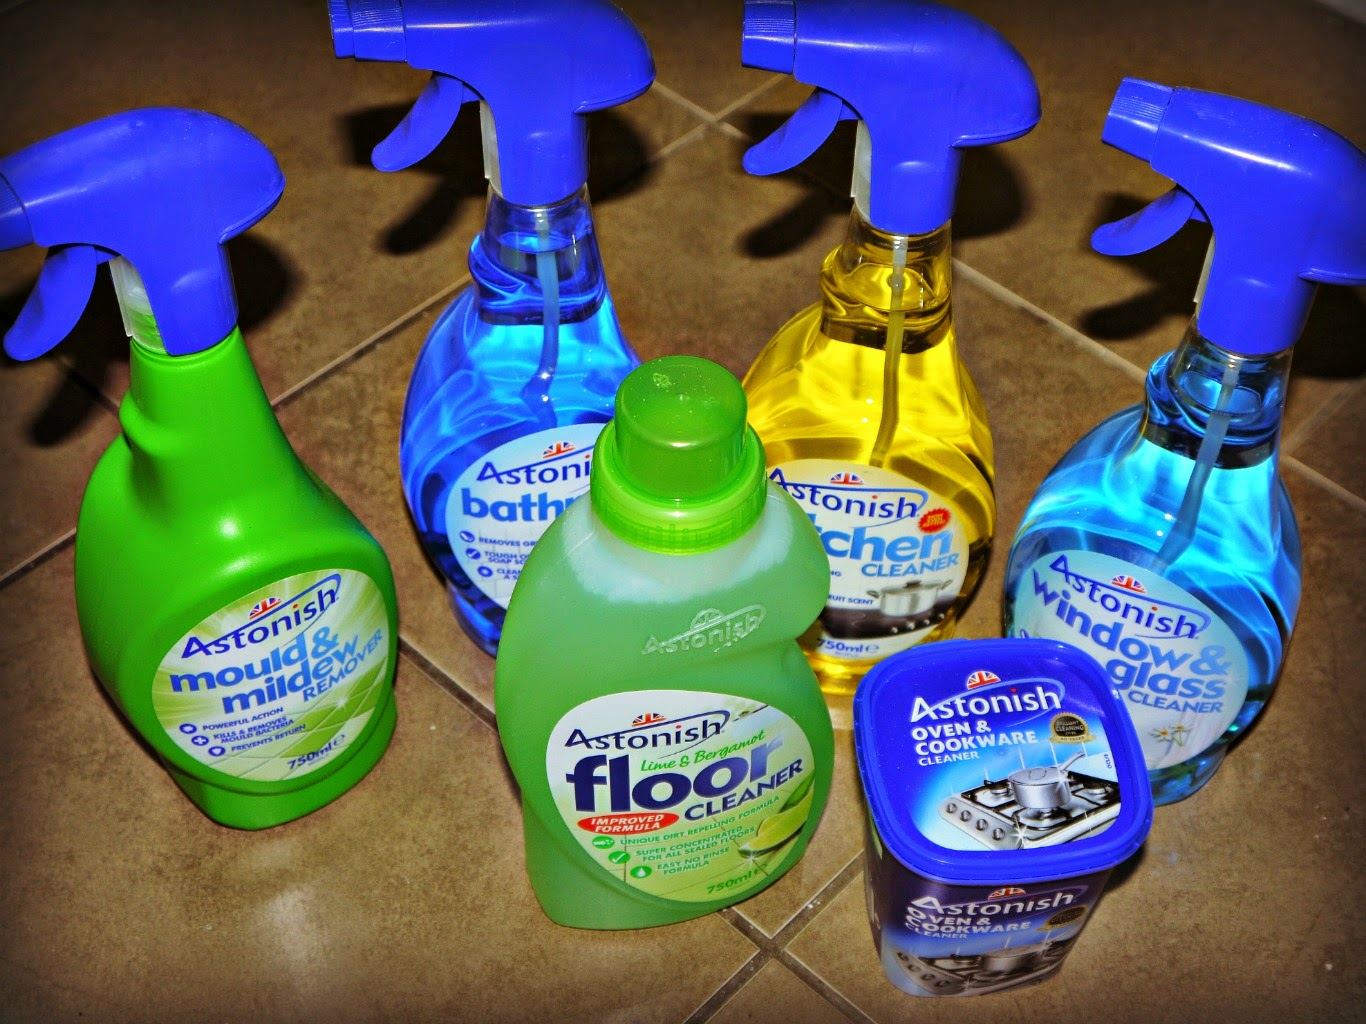 inside the wendy house greener spring cleaning with astonish how to clean mold on bathroom tiles how to clean mold out of bathroom tiles